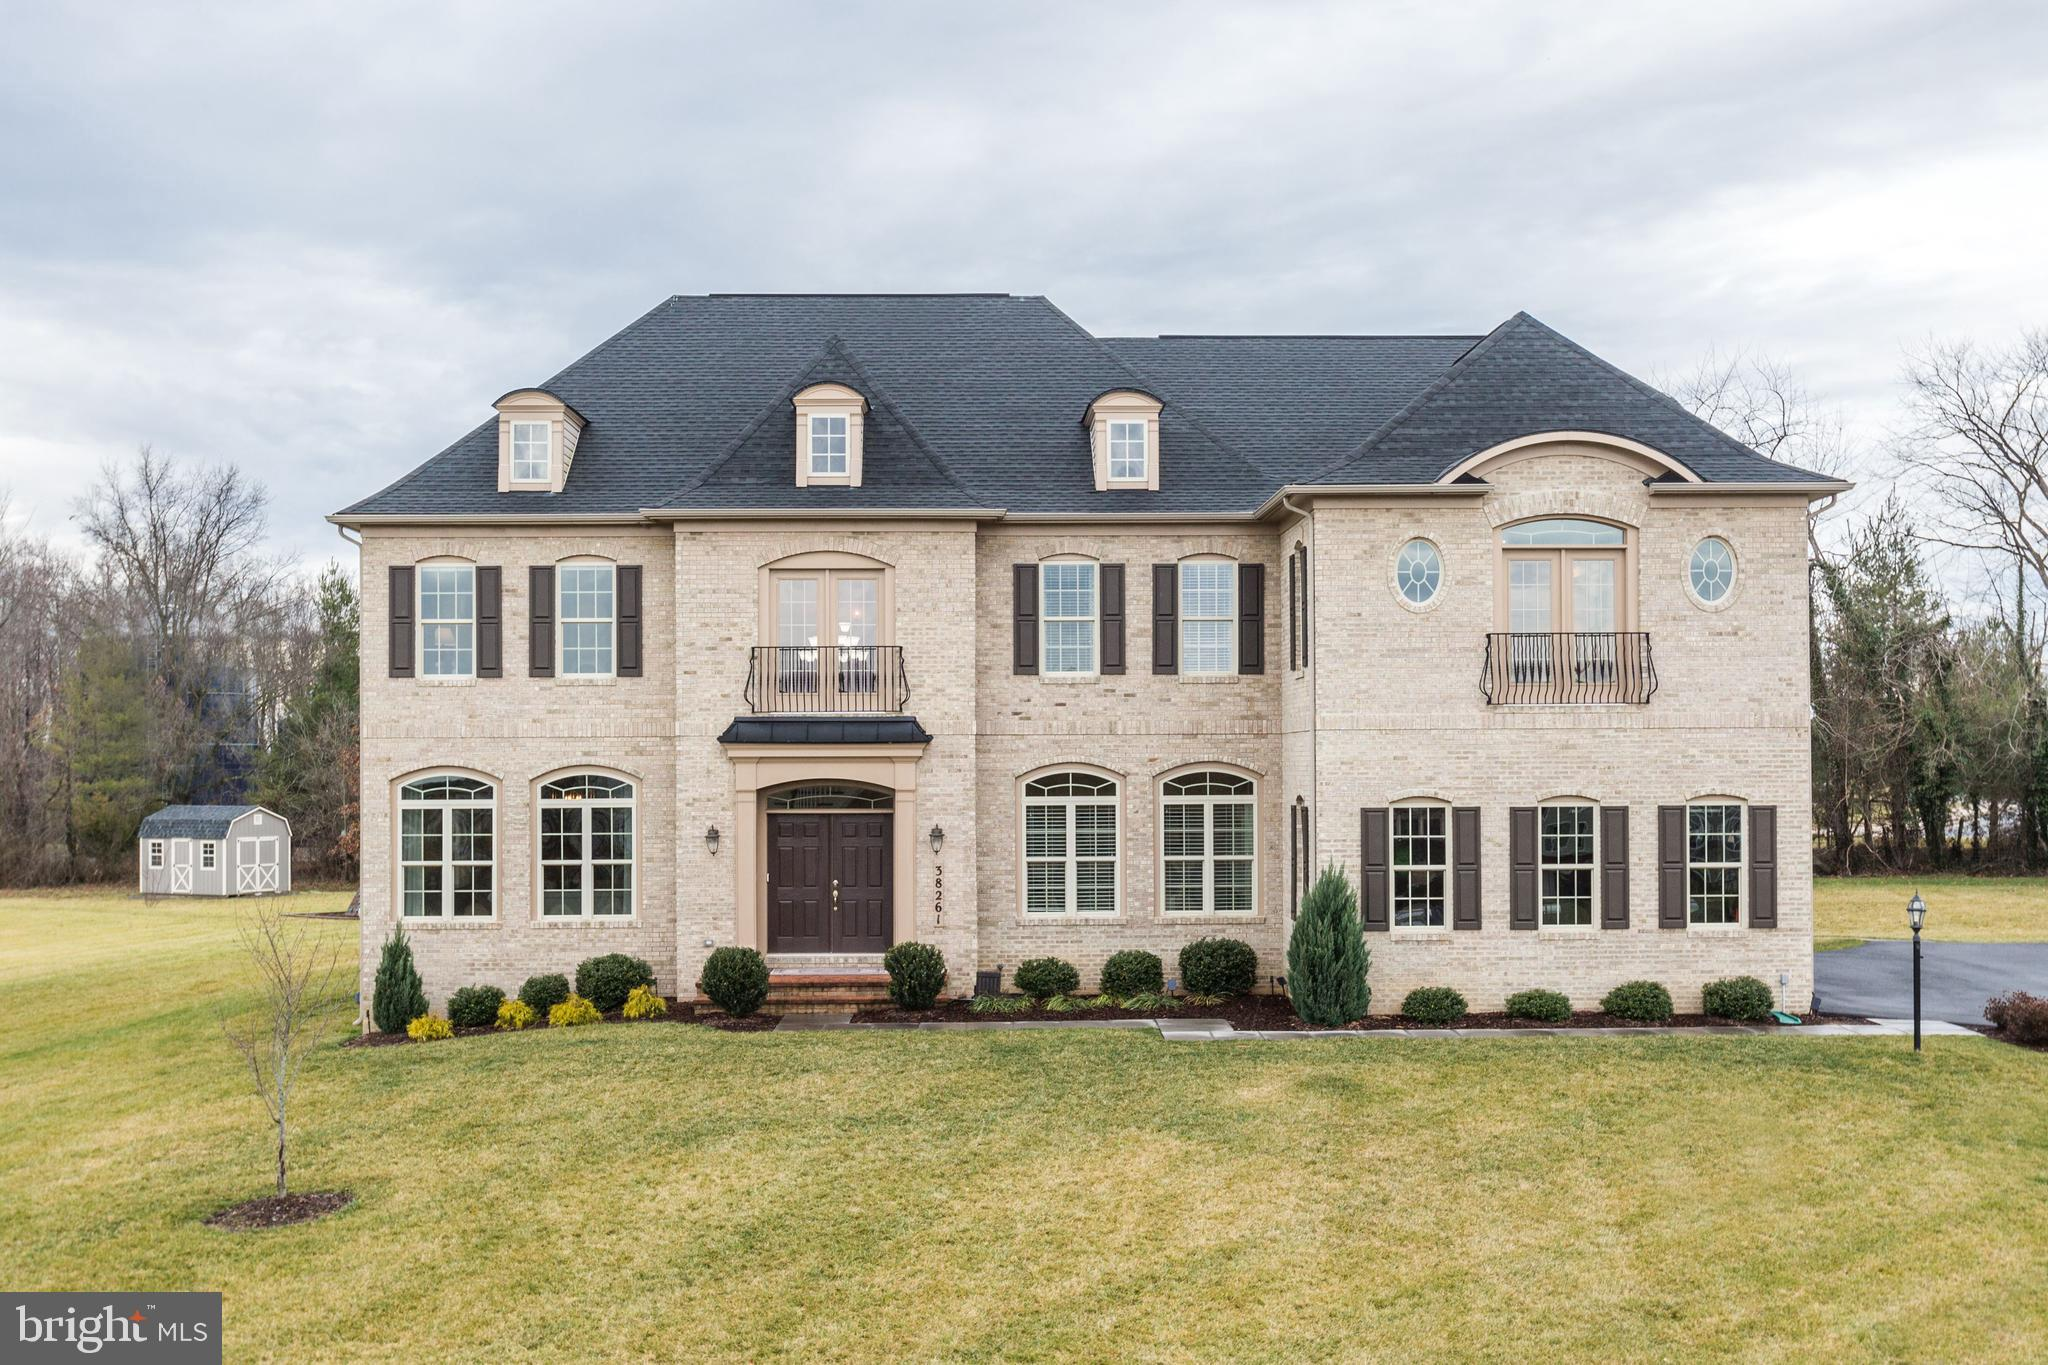 38261 VALLEY RIDGE PLACE, HAMILTON, VA 20158